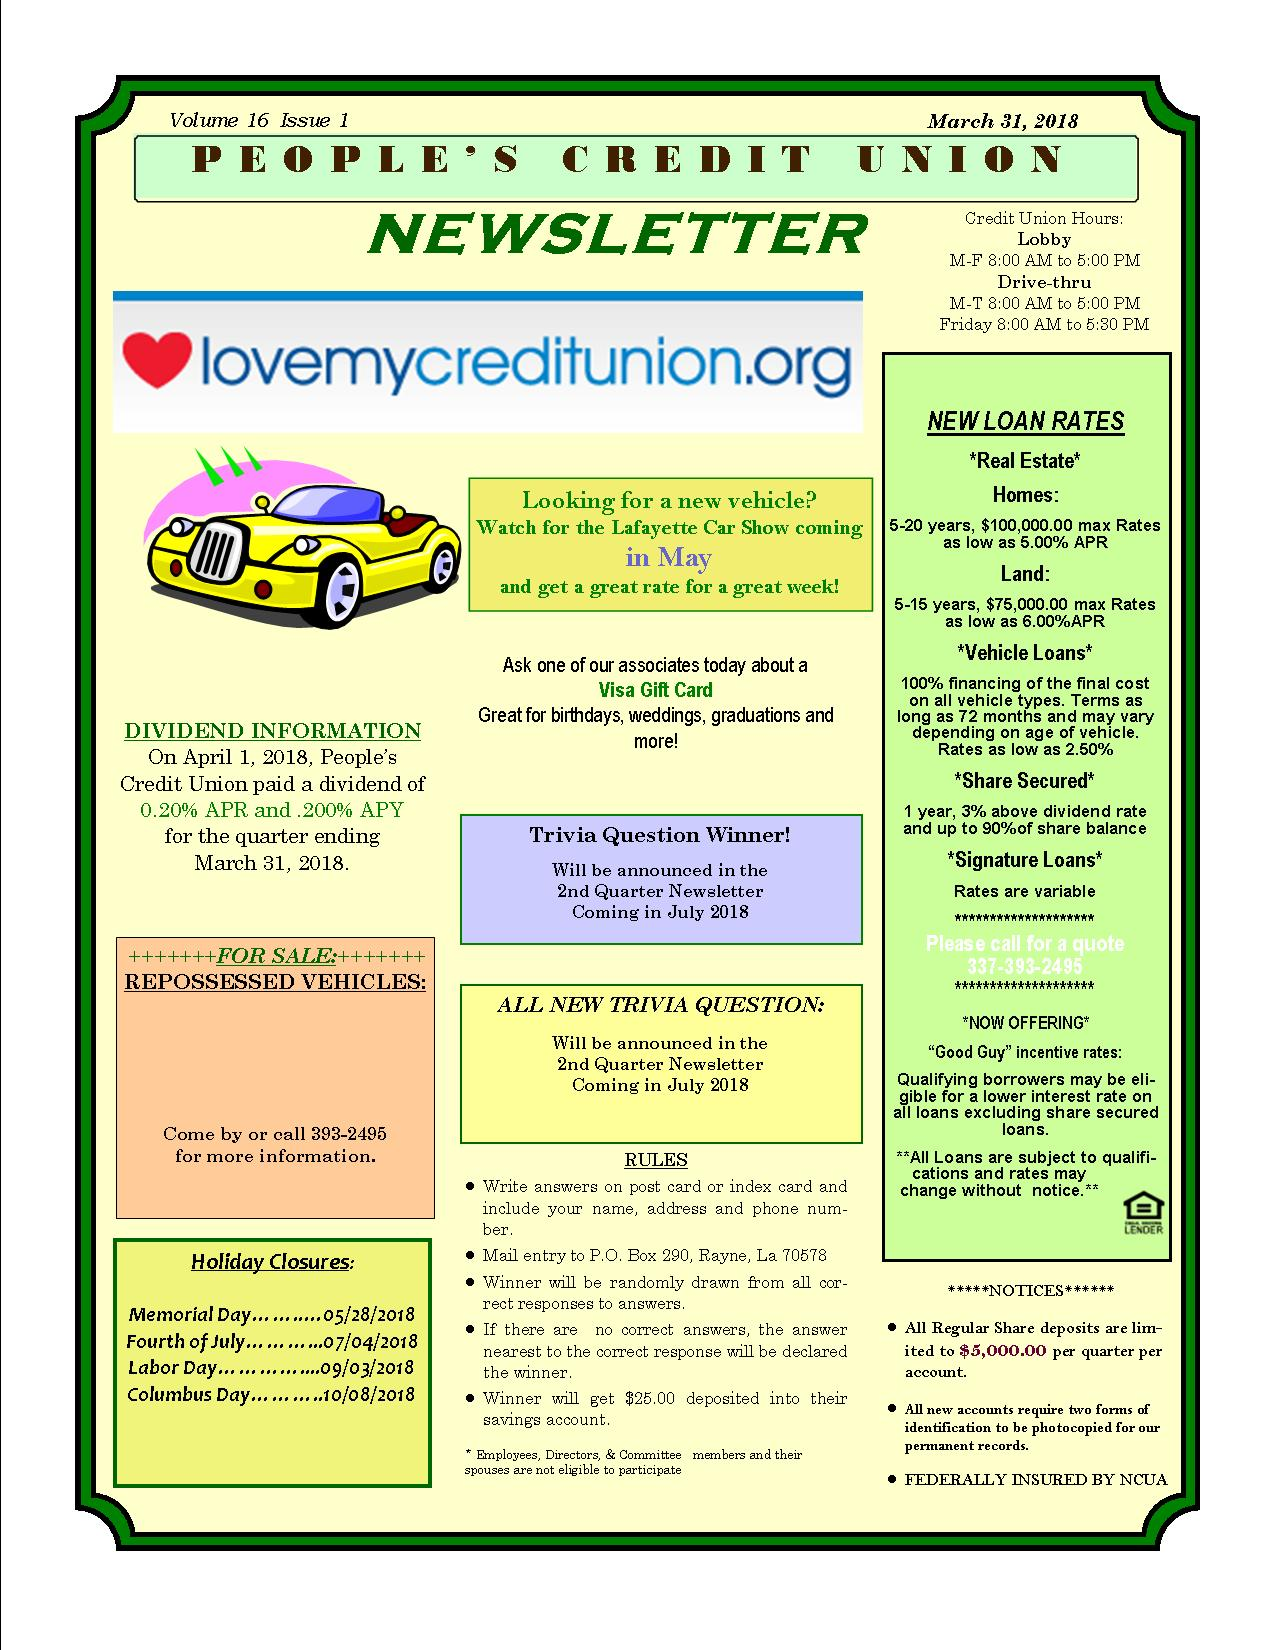 People's Credit Union Newsletter 1st Quarter 2018